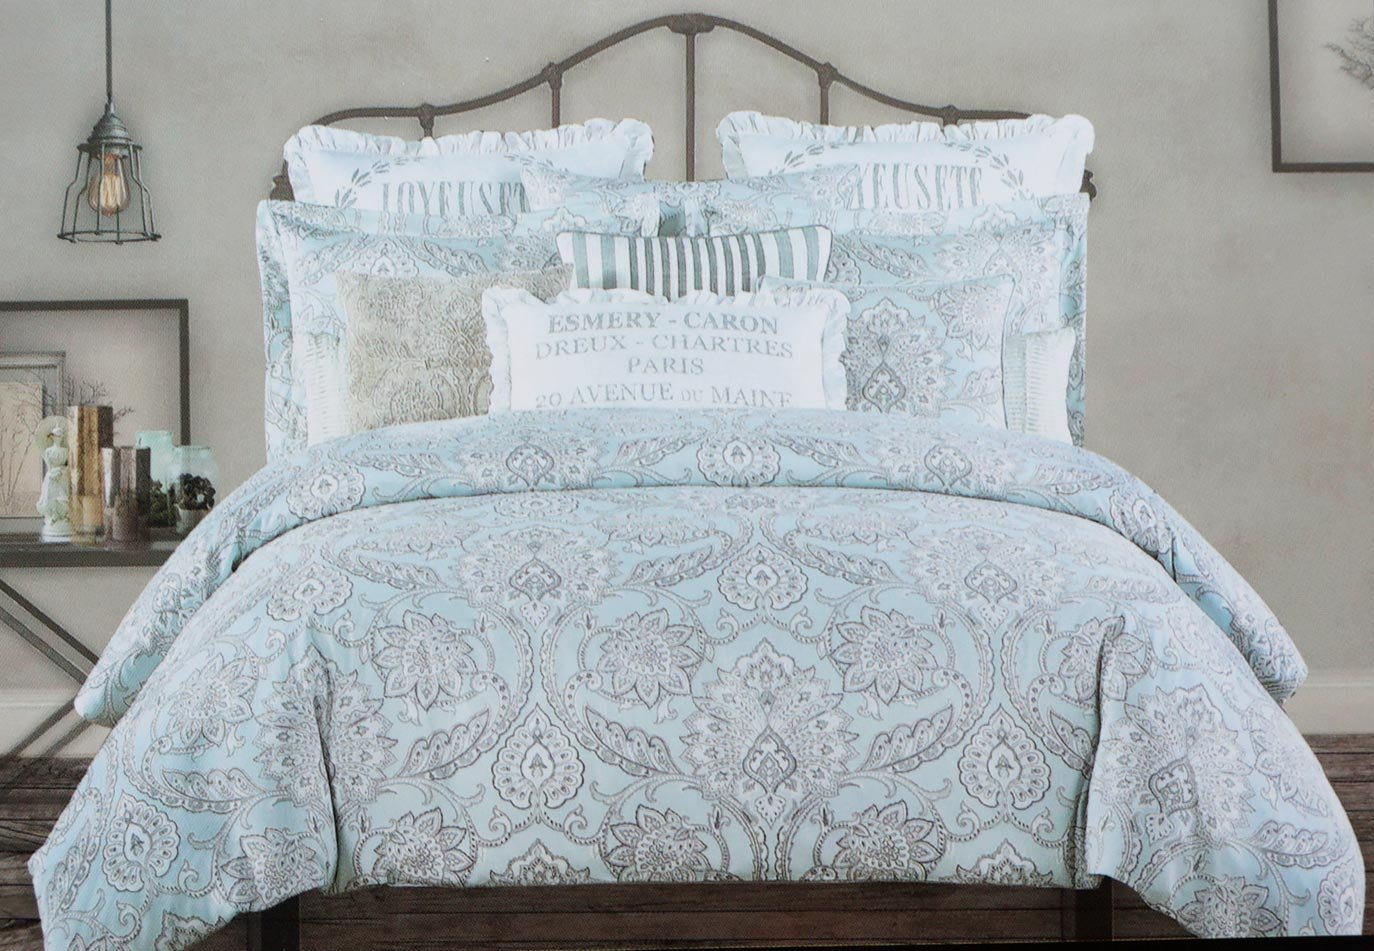 Tahari Bedding 3 Piece Full / Queen Duvet Cover Set Jacobean Floral Vines Pattern in Shades of Gray and White on Light Blue